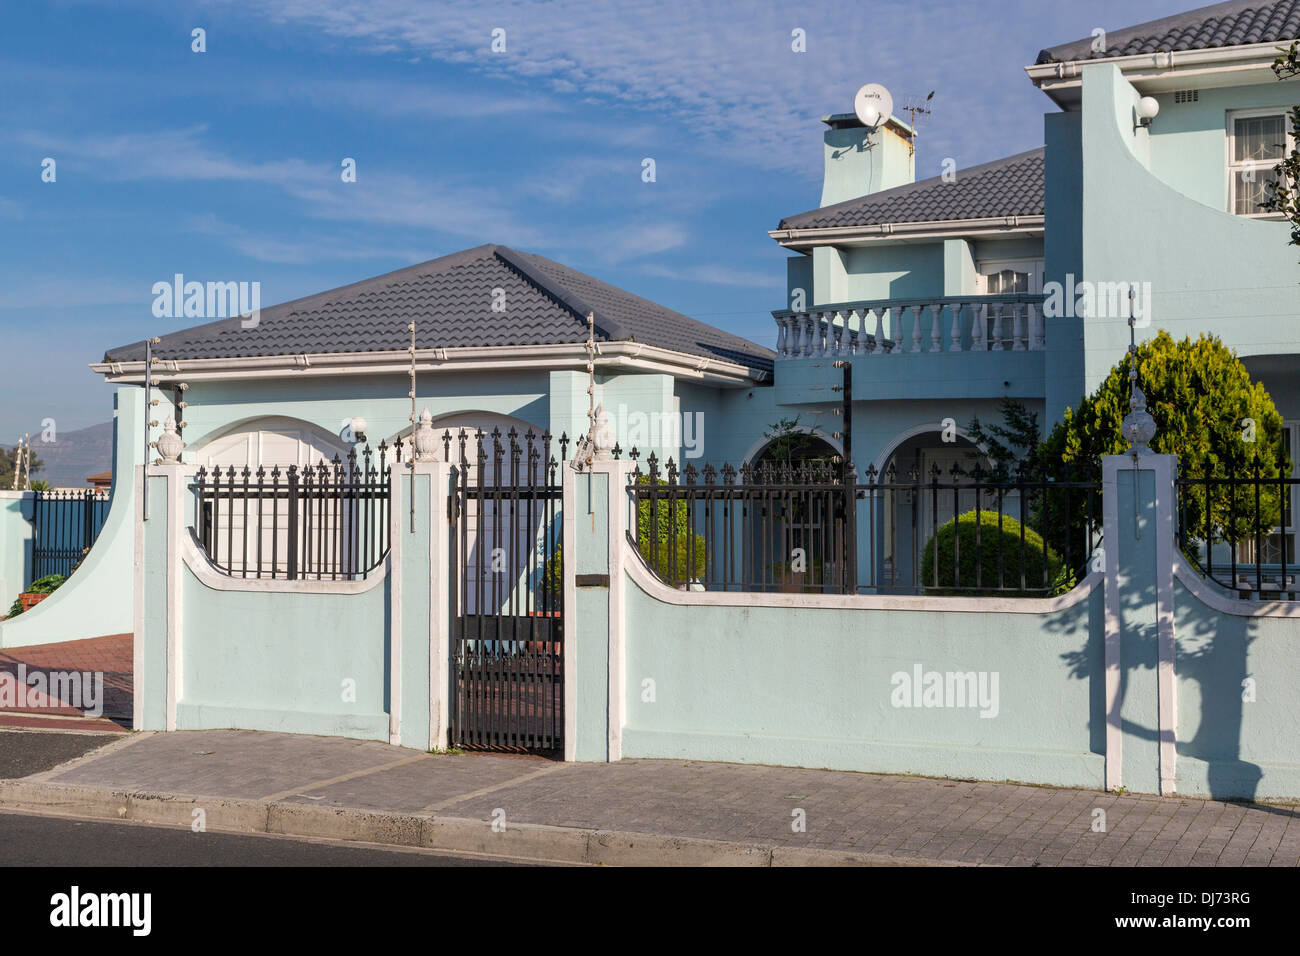 South africa cape town athlone suburb security alarm wires atop wall surrounding upper class house